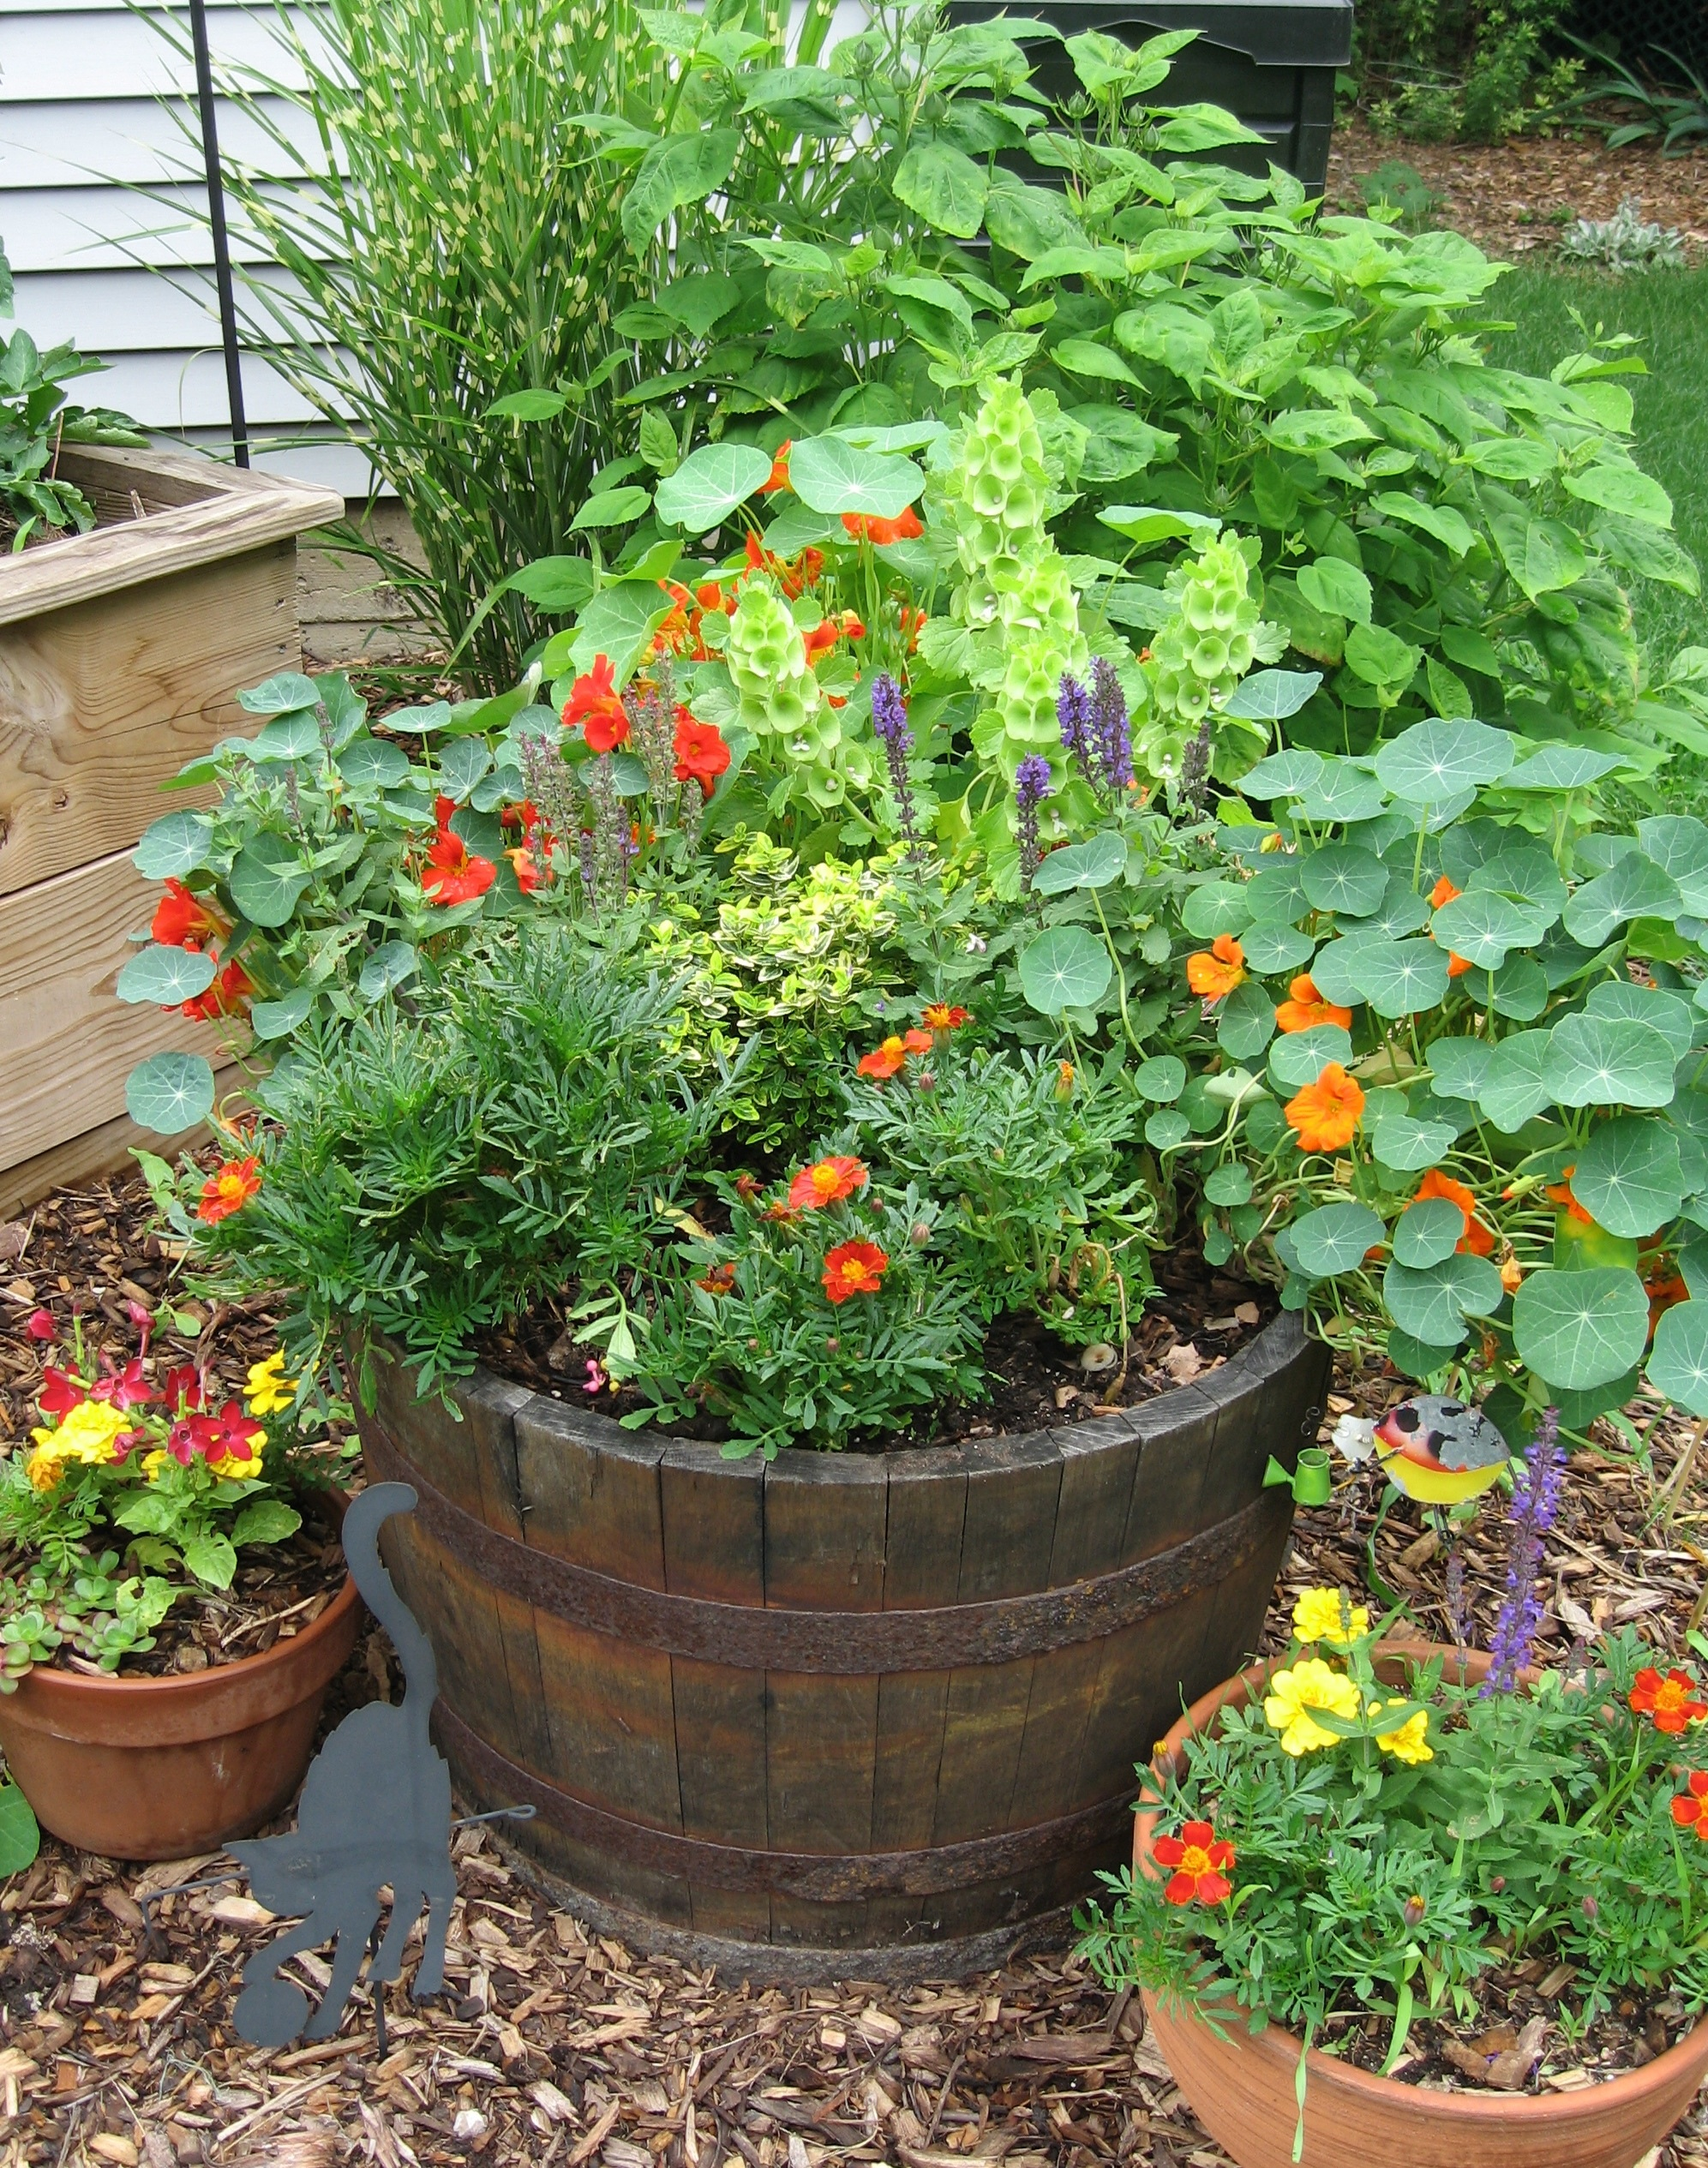 Put some nasturtiums and marigolds in your vegetable garden for a natural way to deter damaging insects.